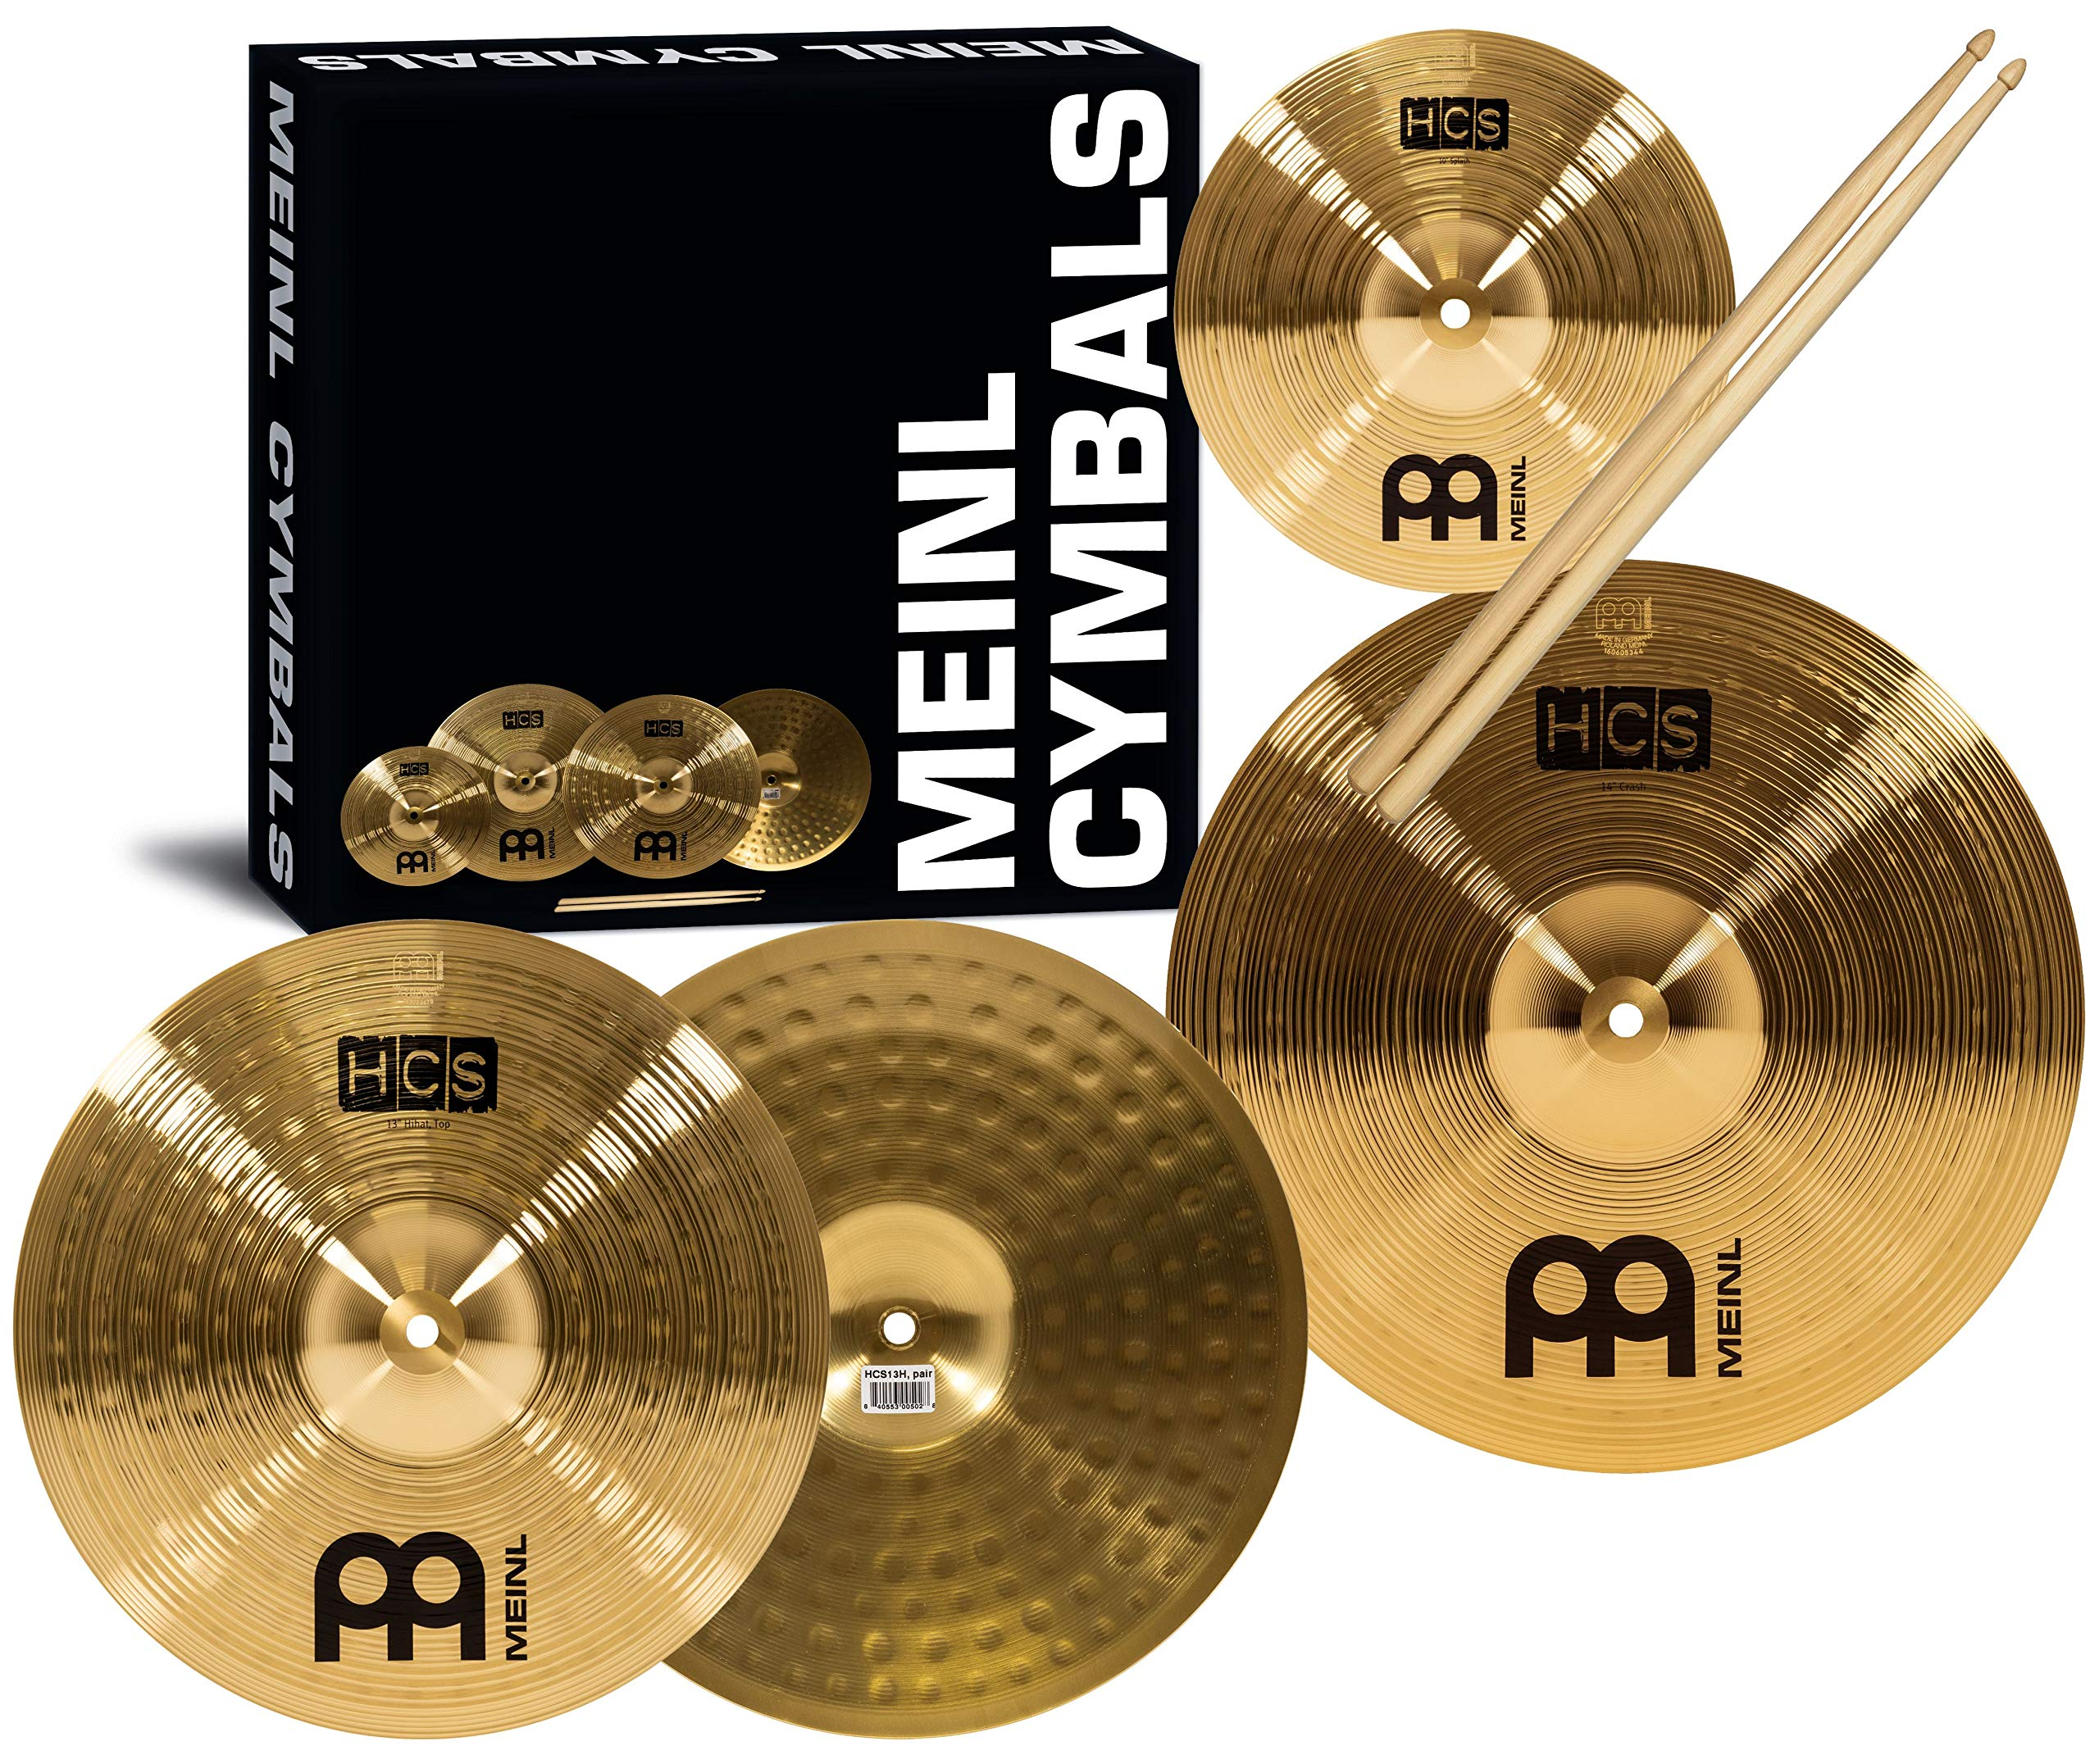 Meinl Cymbal Set Box Pack with 13'' Hihats, 14'' Crash, Plus Free 10'' Splash, Sticks, Lessons - HCS Traditional Brass - Made in Germany, 2-YEAR WARRANTY MultiColor HCS1314-10S by Meinl